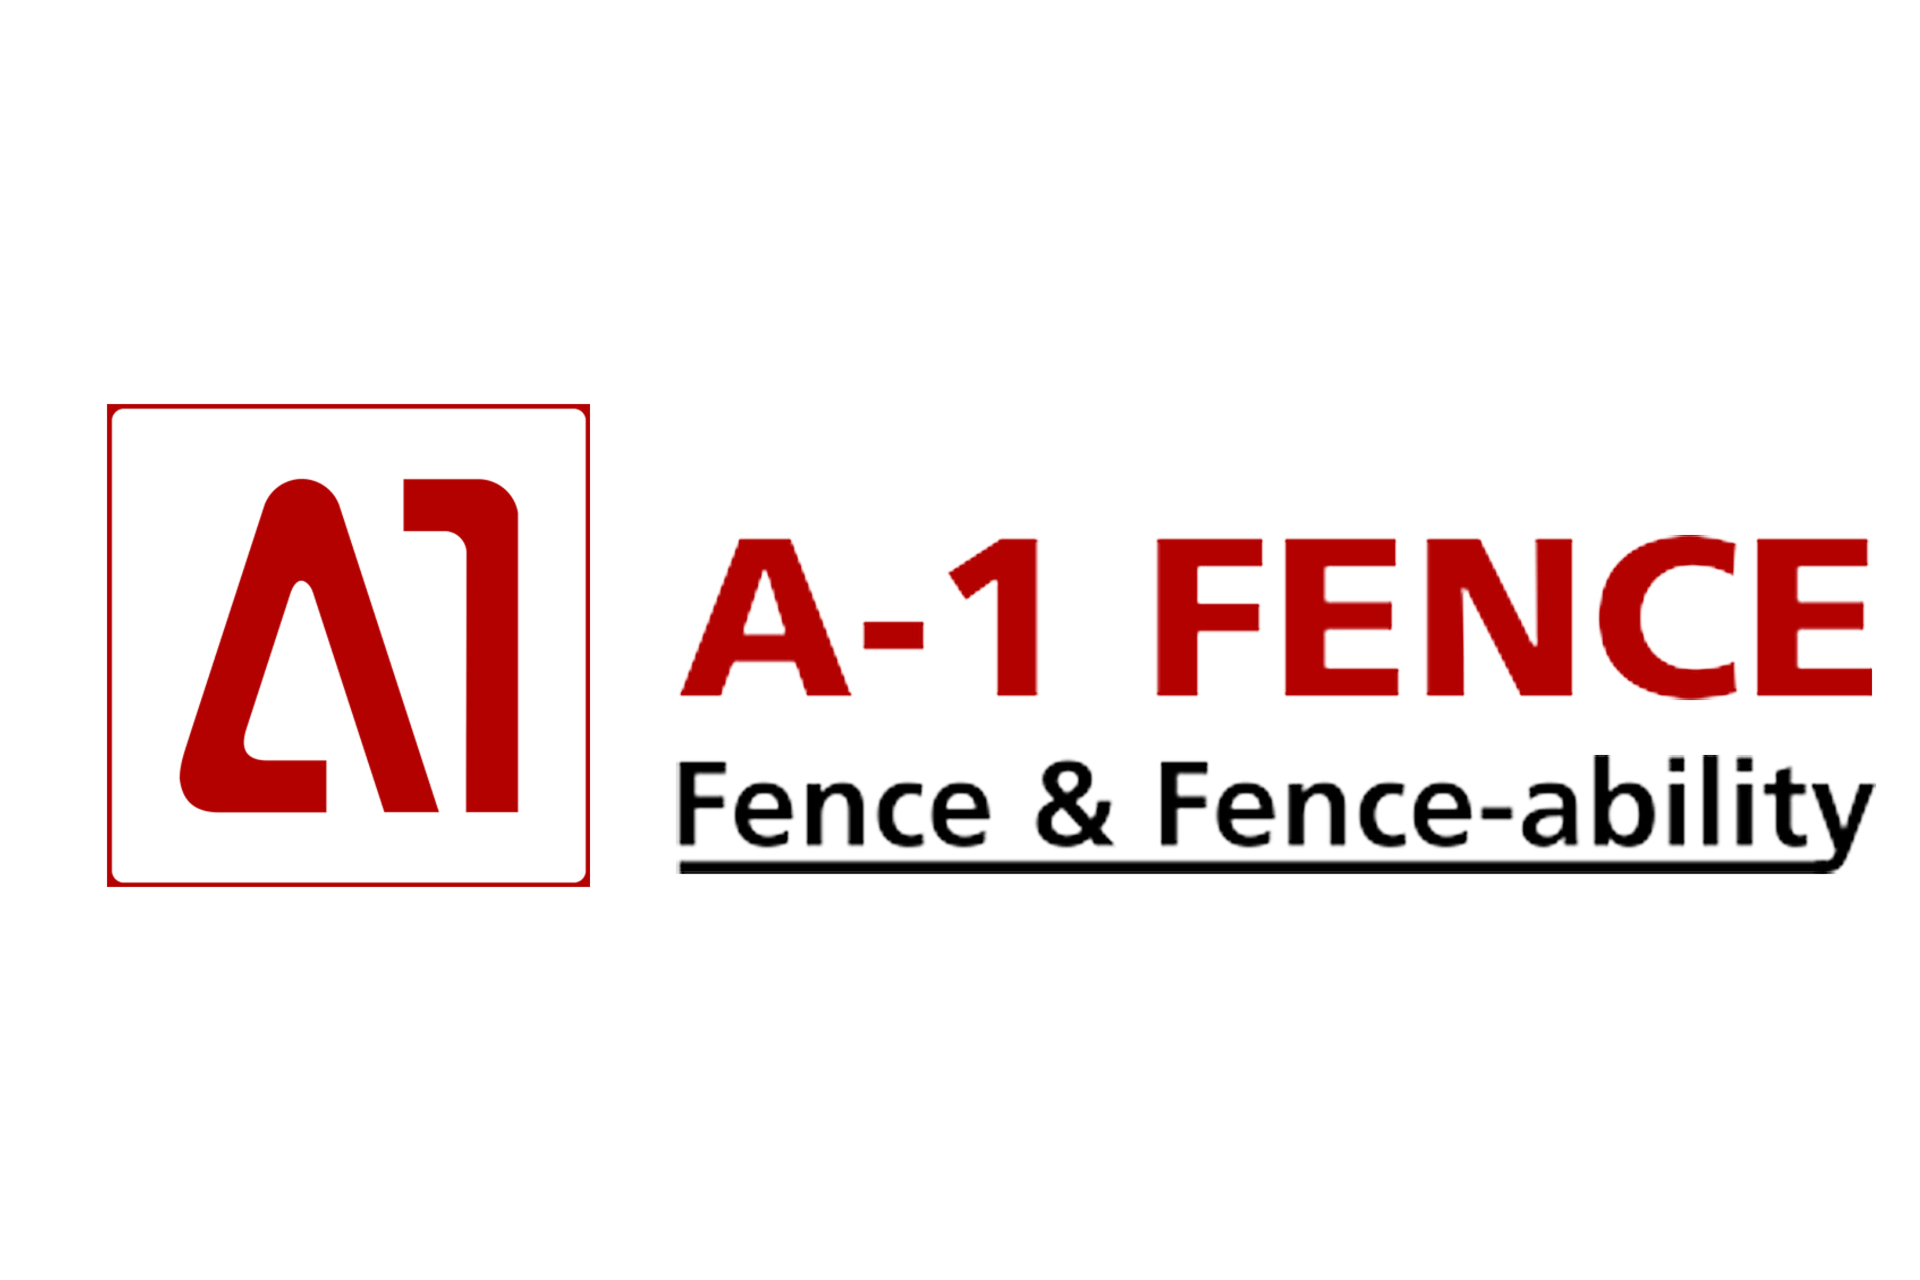 A-1 Fence Products Company Pvt Ltd